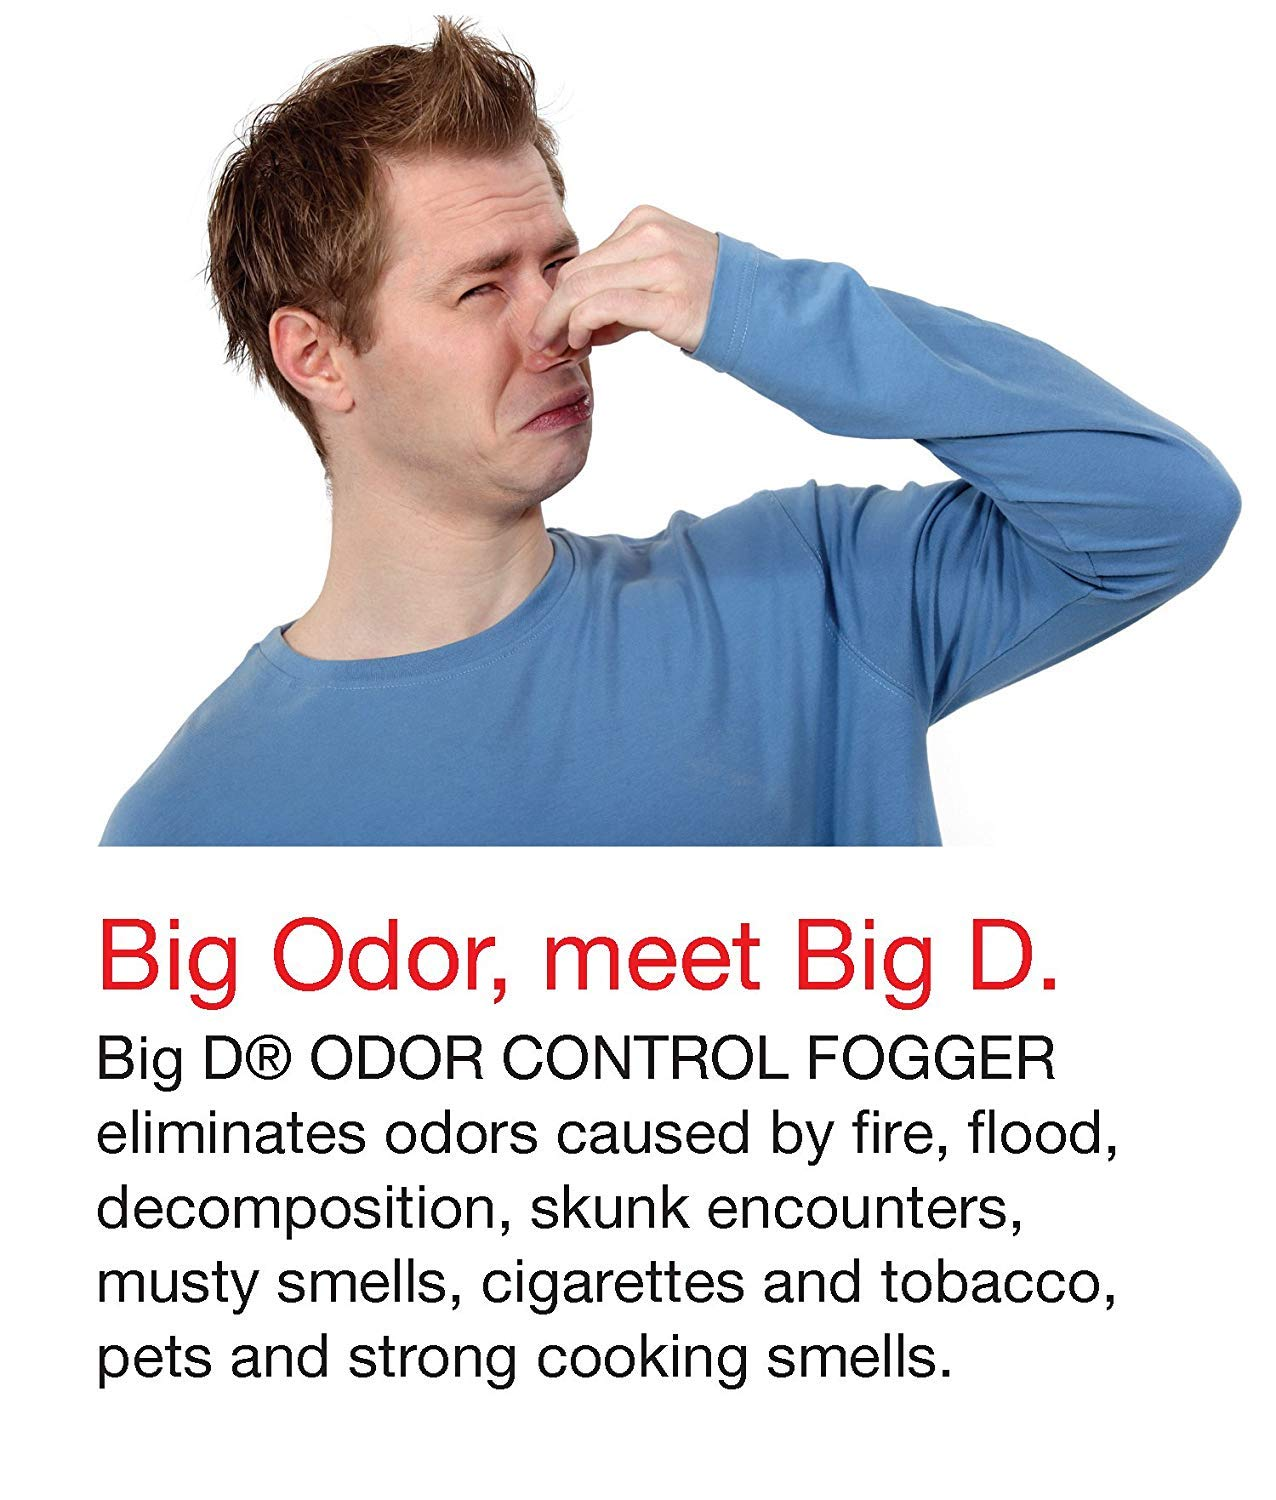 Big D 345 Odor Control Fogger, Sunburst Fragrance, 5 oz (Pack of 12) - Kills Odors from fire, Flood, Decomposition, Skunk, Cigarettes, Musty Smells (Вundlе оf Fоur)